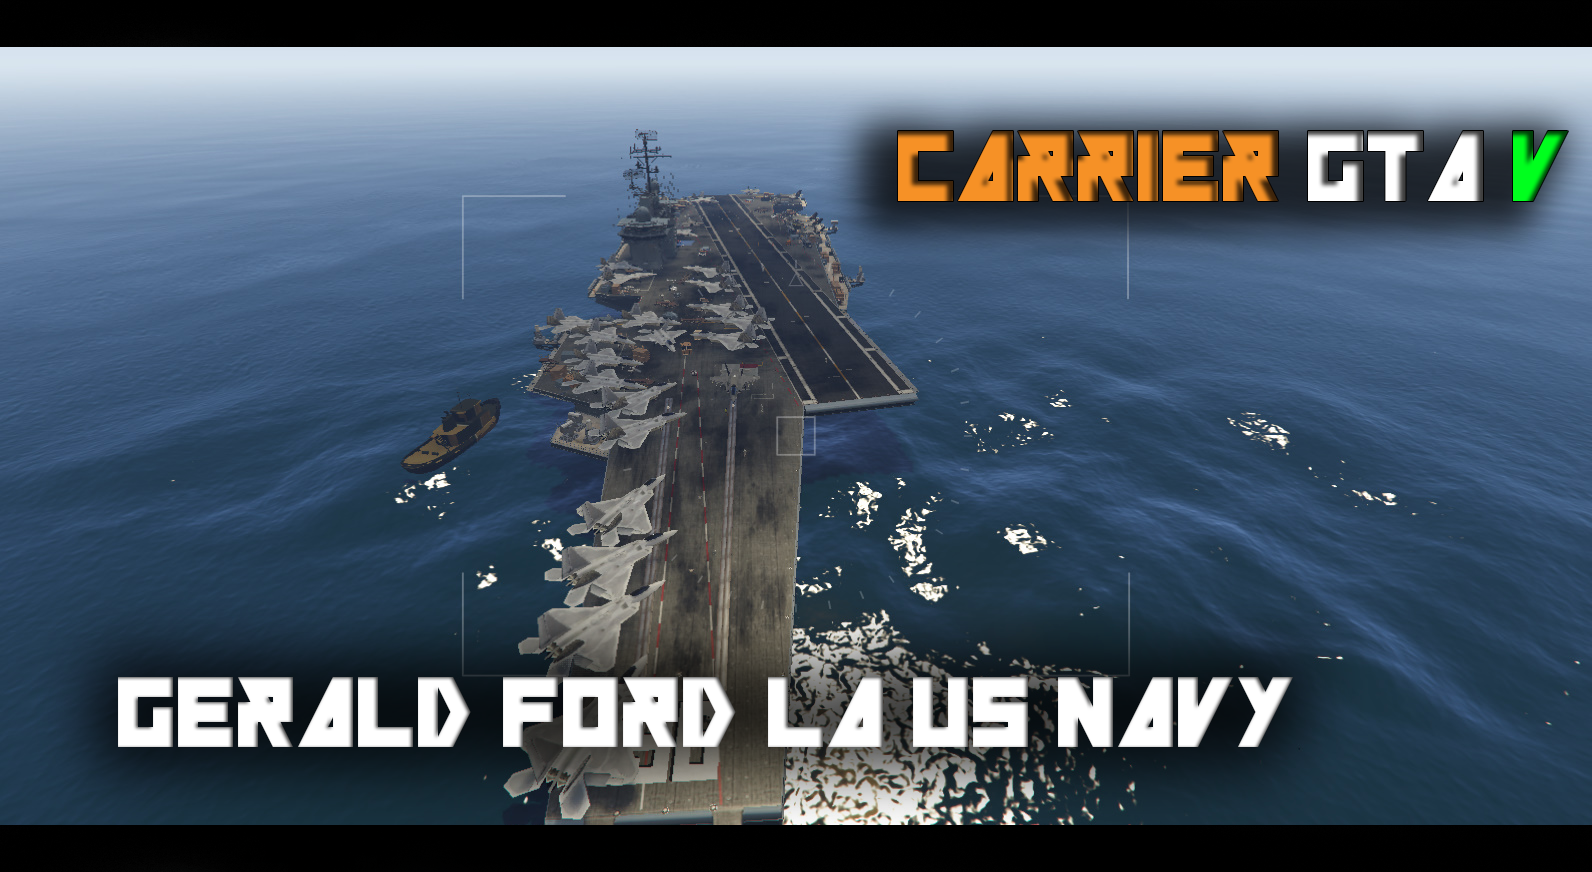 US Navy Carrier General Ford Map Editor GTAModscom - Us navy ship map